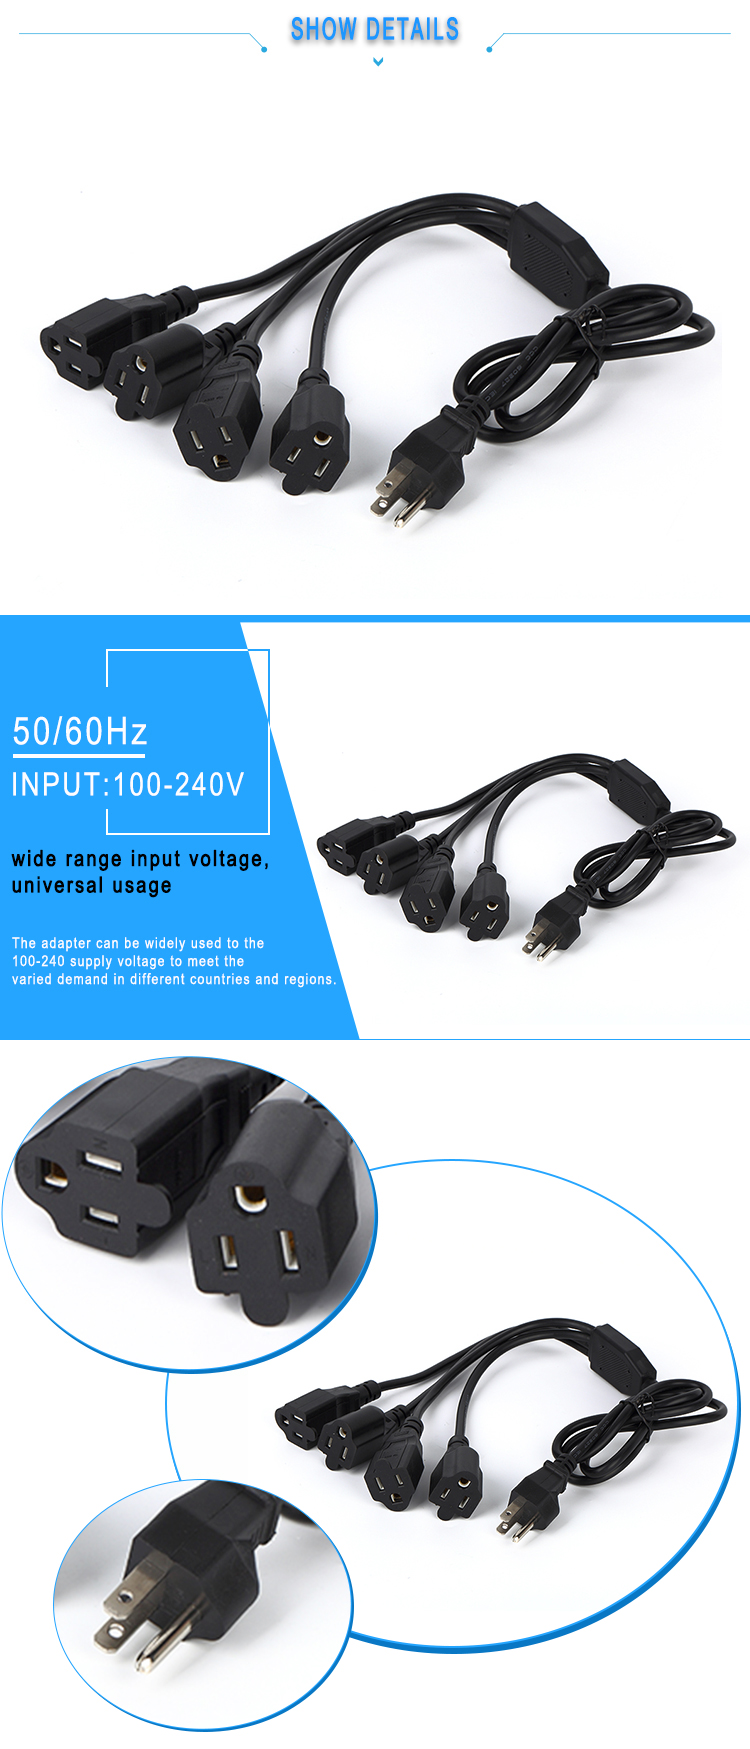 1 to 4 extension cable